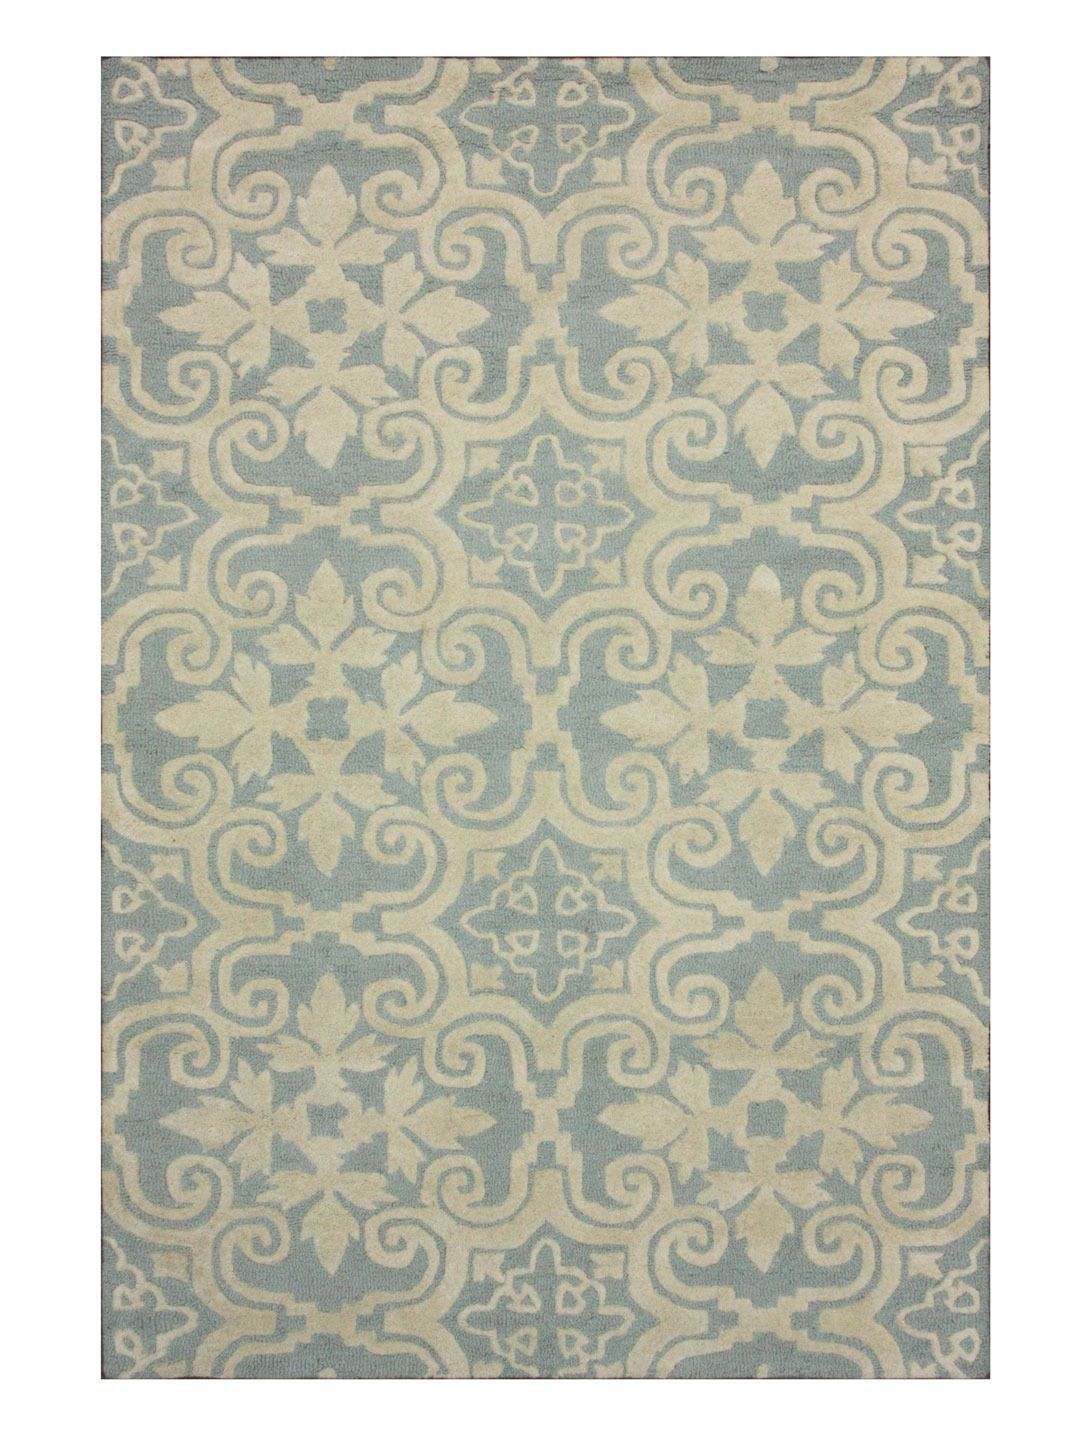 Khloe Hand Tufted Rug Gilt Home Light Blue Wool Rug Rugs Blue Wool Rugs